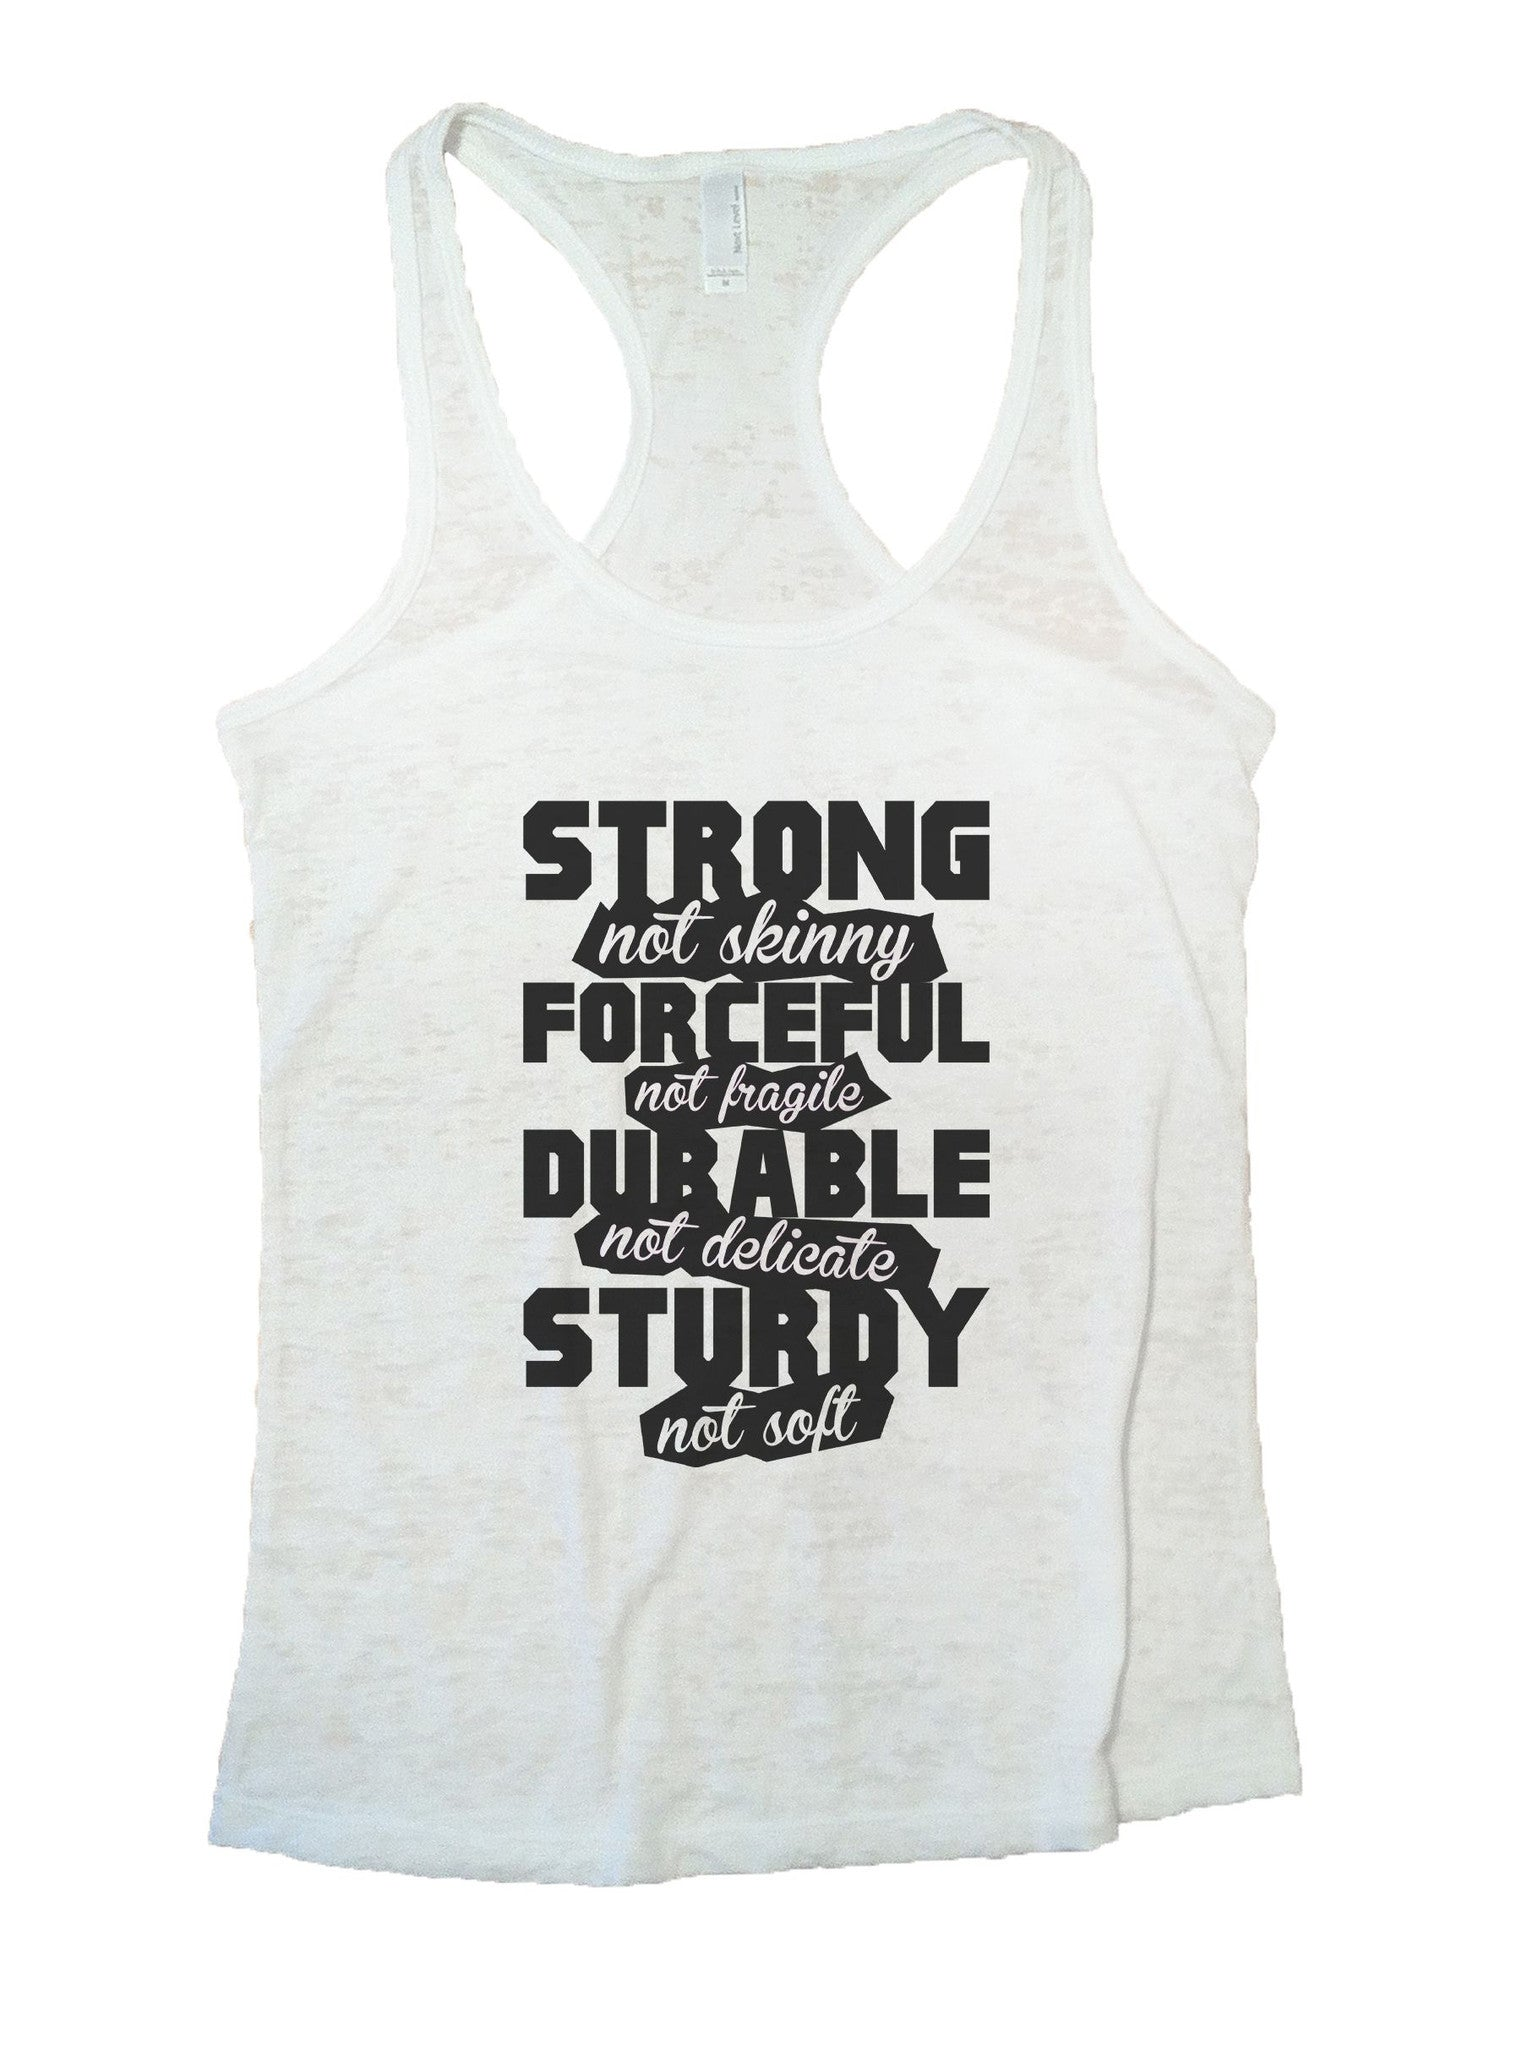 Strong Not Skinny Forceful Not Fragile Durable Not Delicate Sturdy Not Soft Burnout Tank Top By BurnoutTankTops.com - 845 - Funny Shirts Tank Tops Burnouts and Triblends  - 6